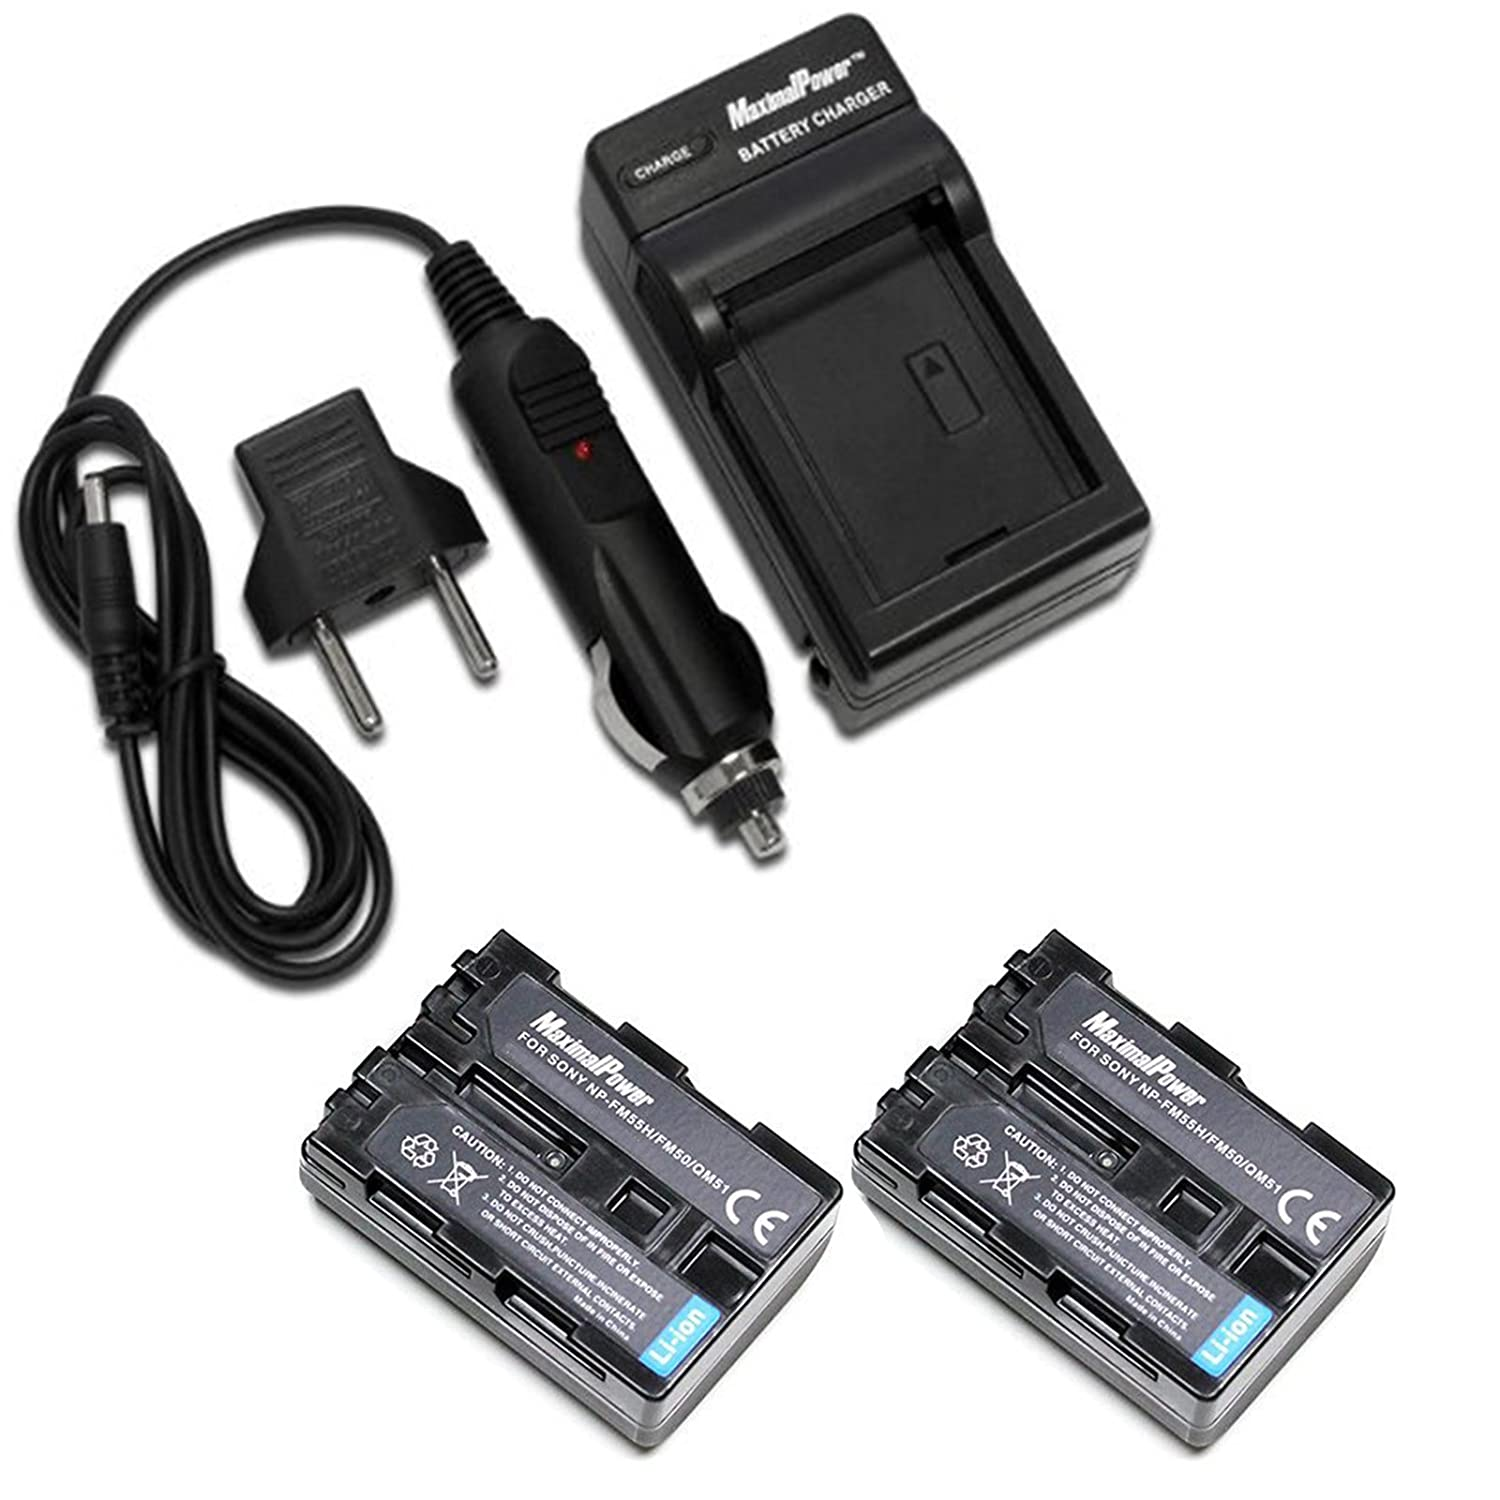 Maximal Power 2X Battery 2100mAh + Charger for Sony NP-FP50, FP70, FP80, FP90, FH50, FH70, FH100, NP-FV30, NP-FV70, NP-FV100 with USB Port MaximalPower